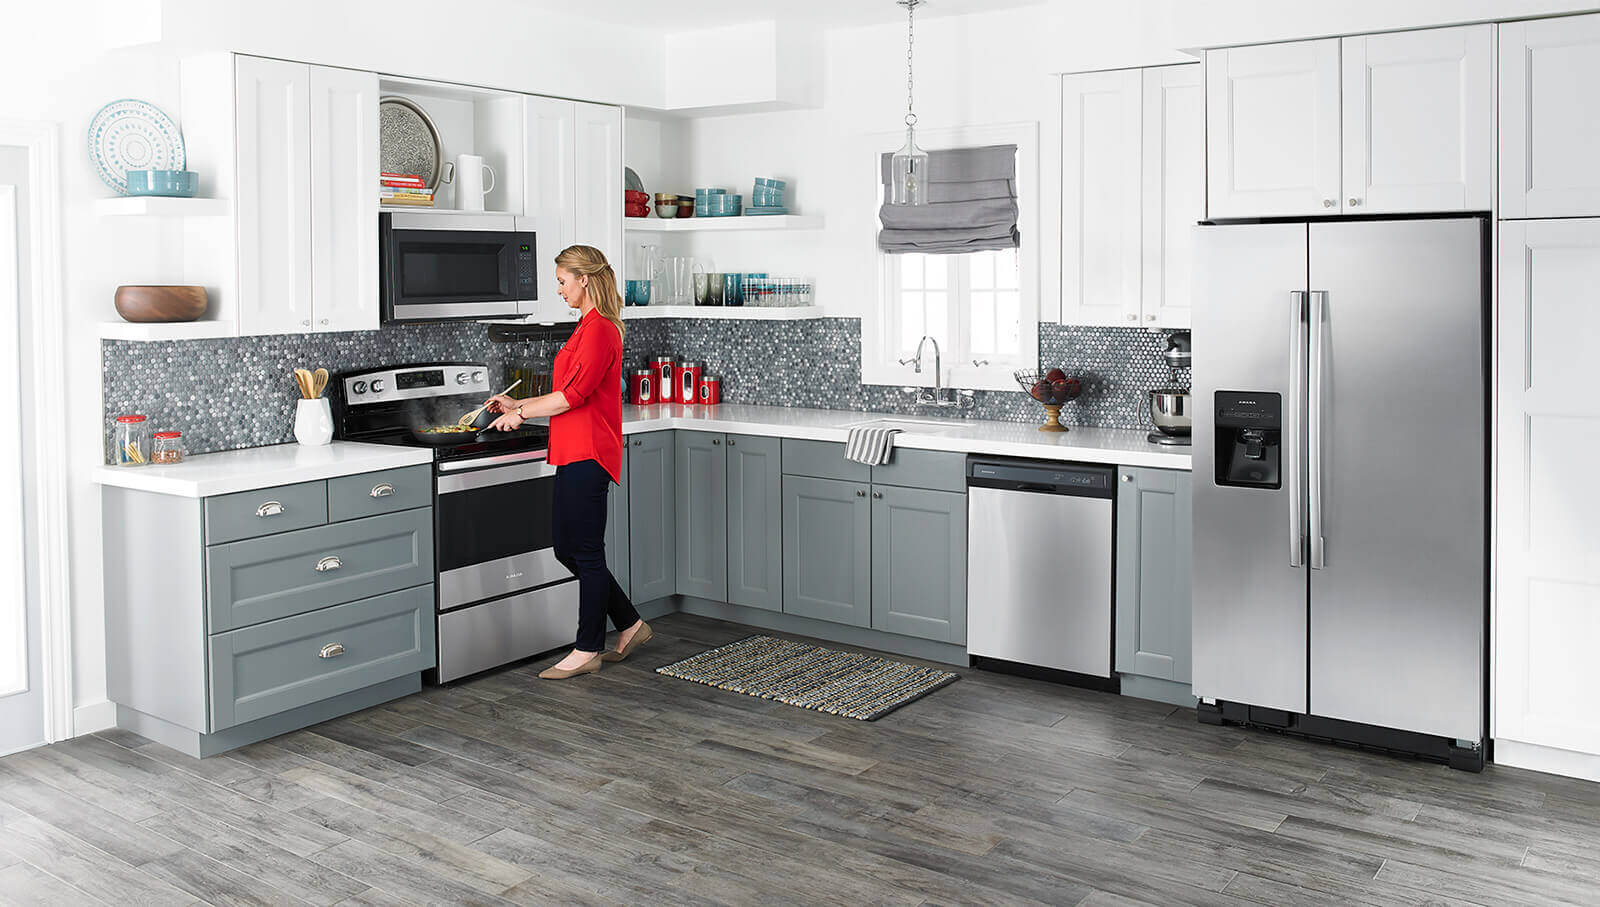 AMANA® STAINLESS STEEL KITCHEN SUITE